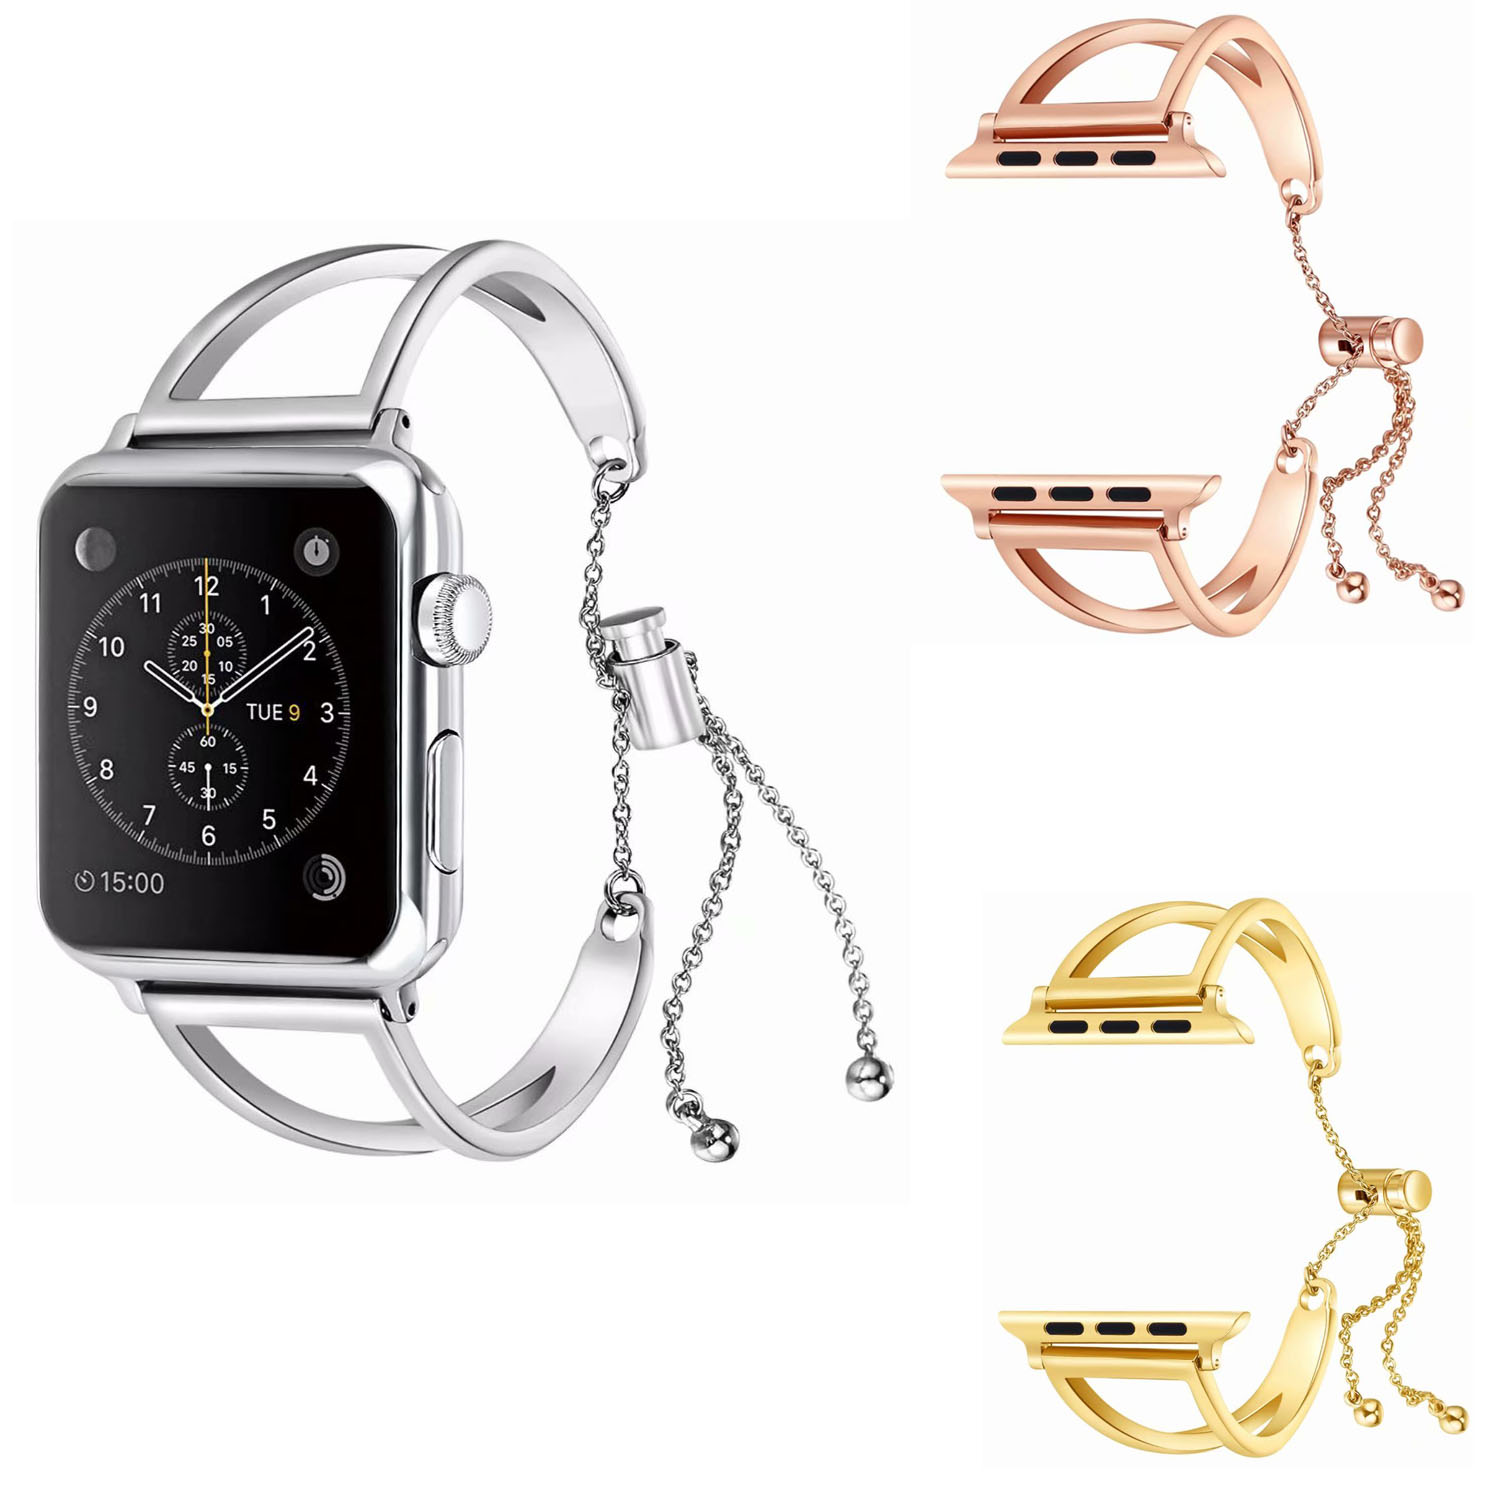 Fashion Stainless Steel Bracelet for Apple Watch Band Hollow Metal Watch Strap for Apple iWatch Series 1/2/3 38mm 42mm 42mm 38mm for apple watch s3 series 3